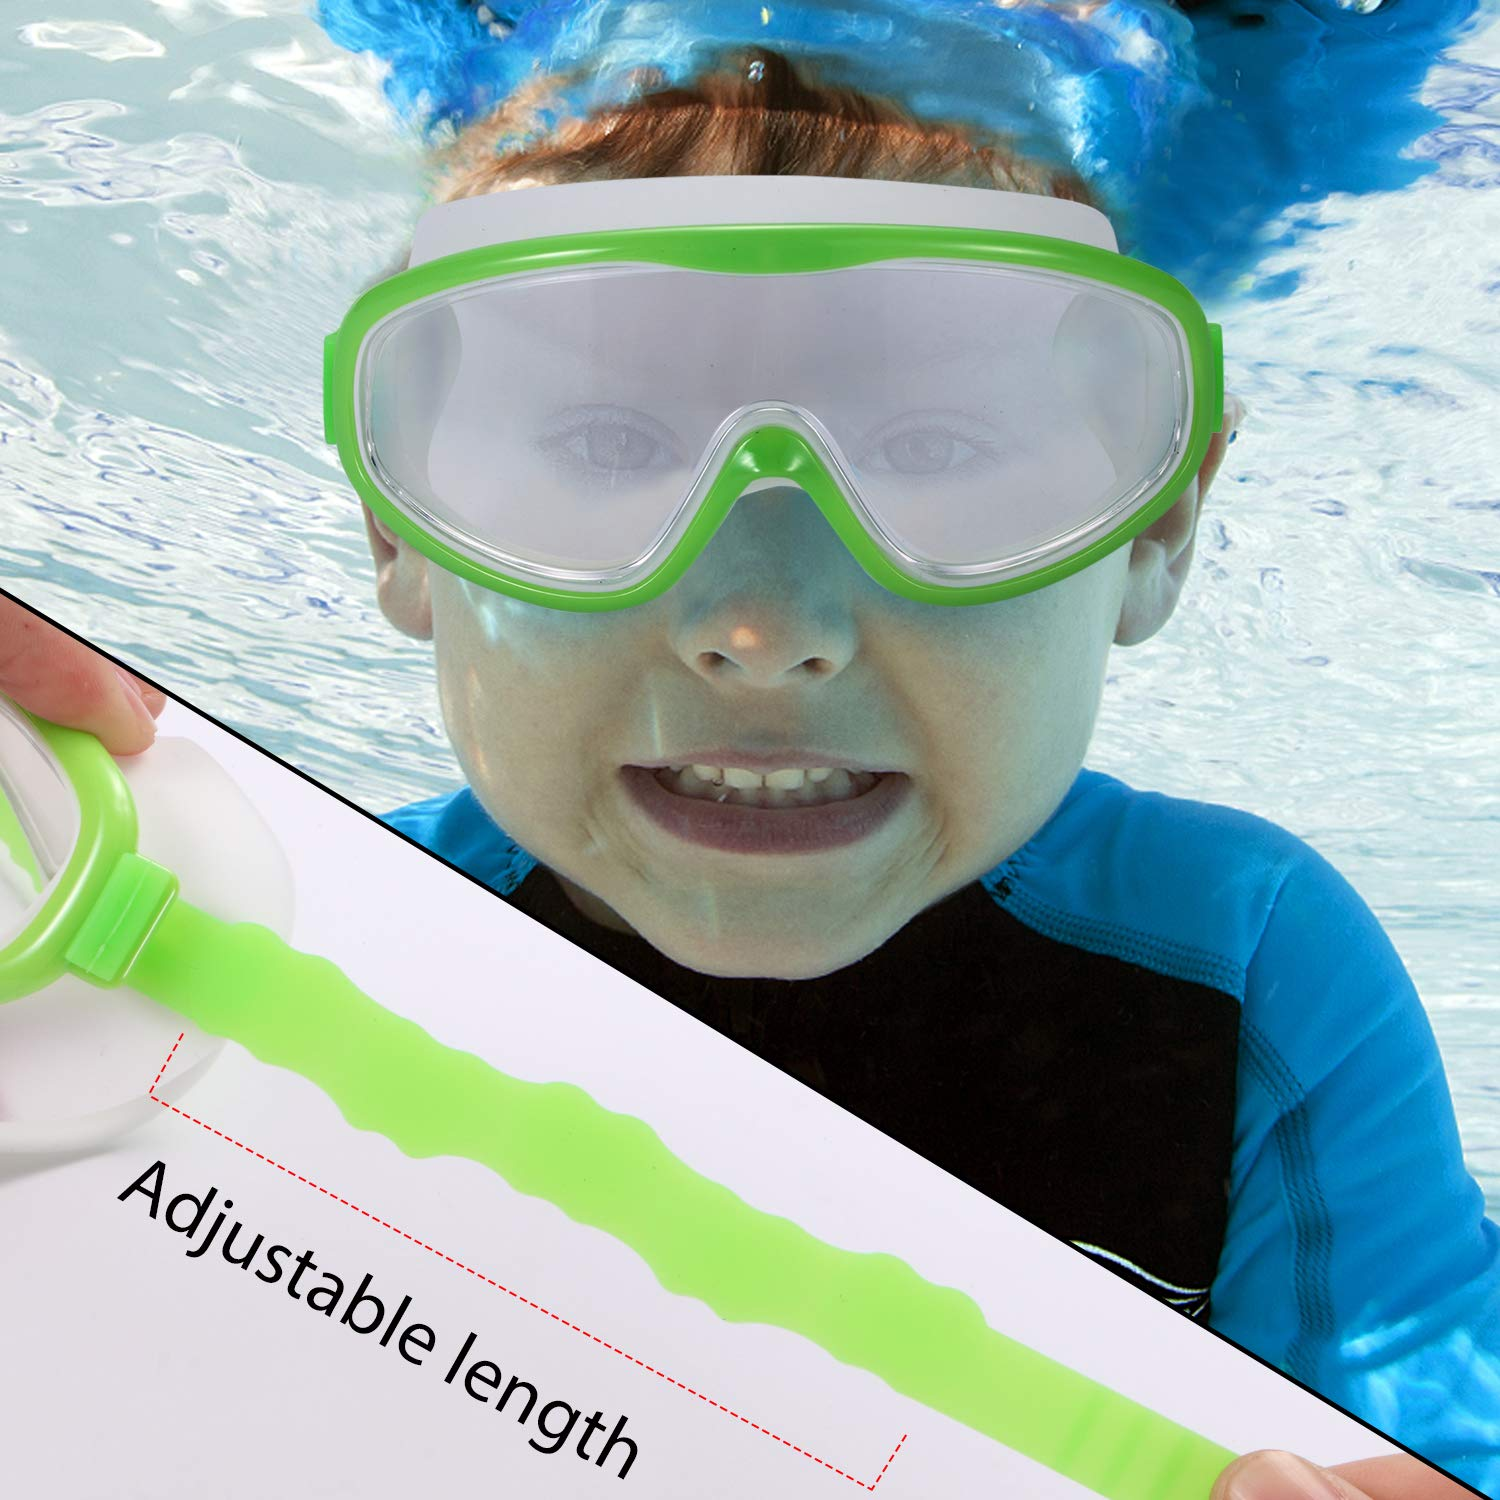 3dddecb34905 Wide Vision Swimming Glasses for Children and Early Teens from 3 to 15  Years Old UV ...